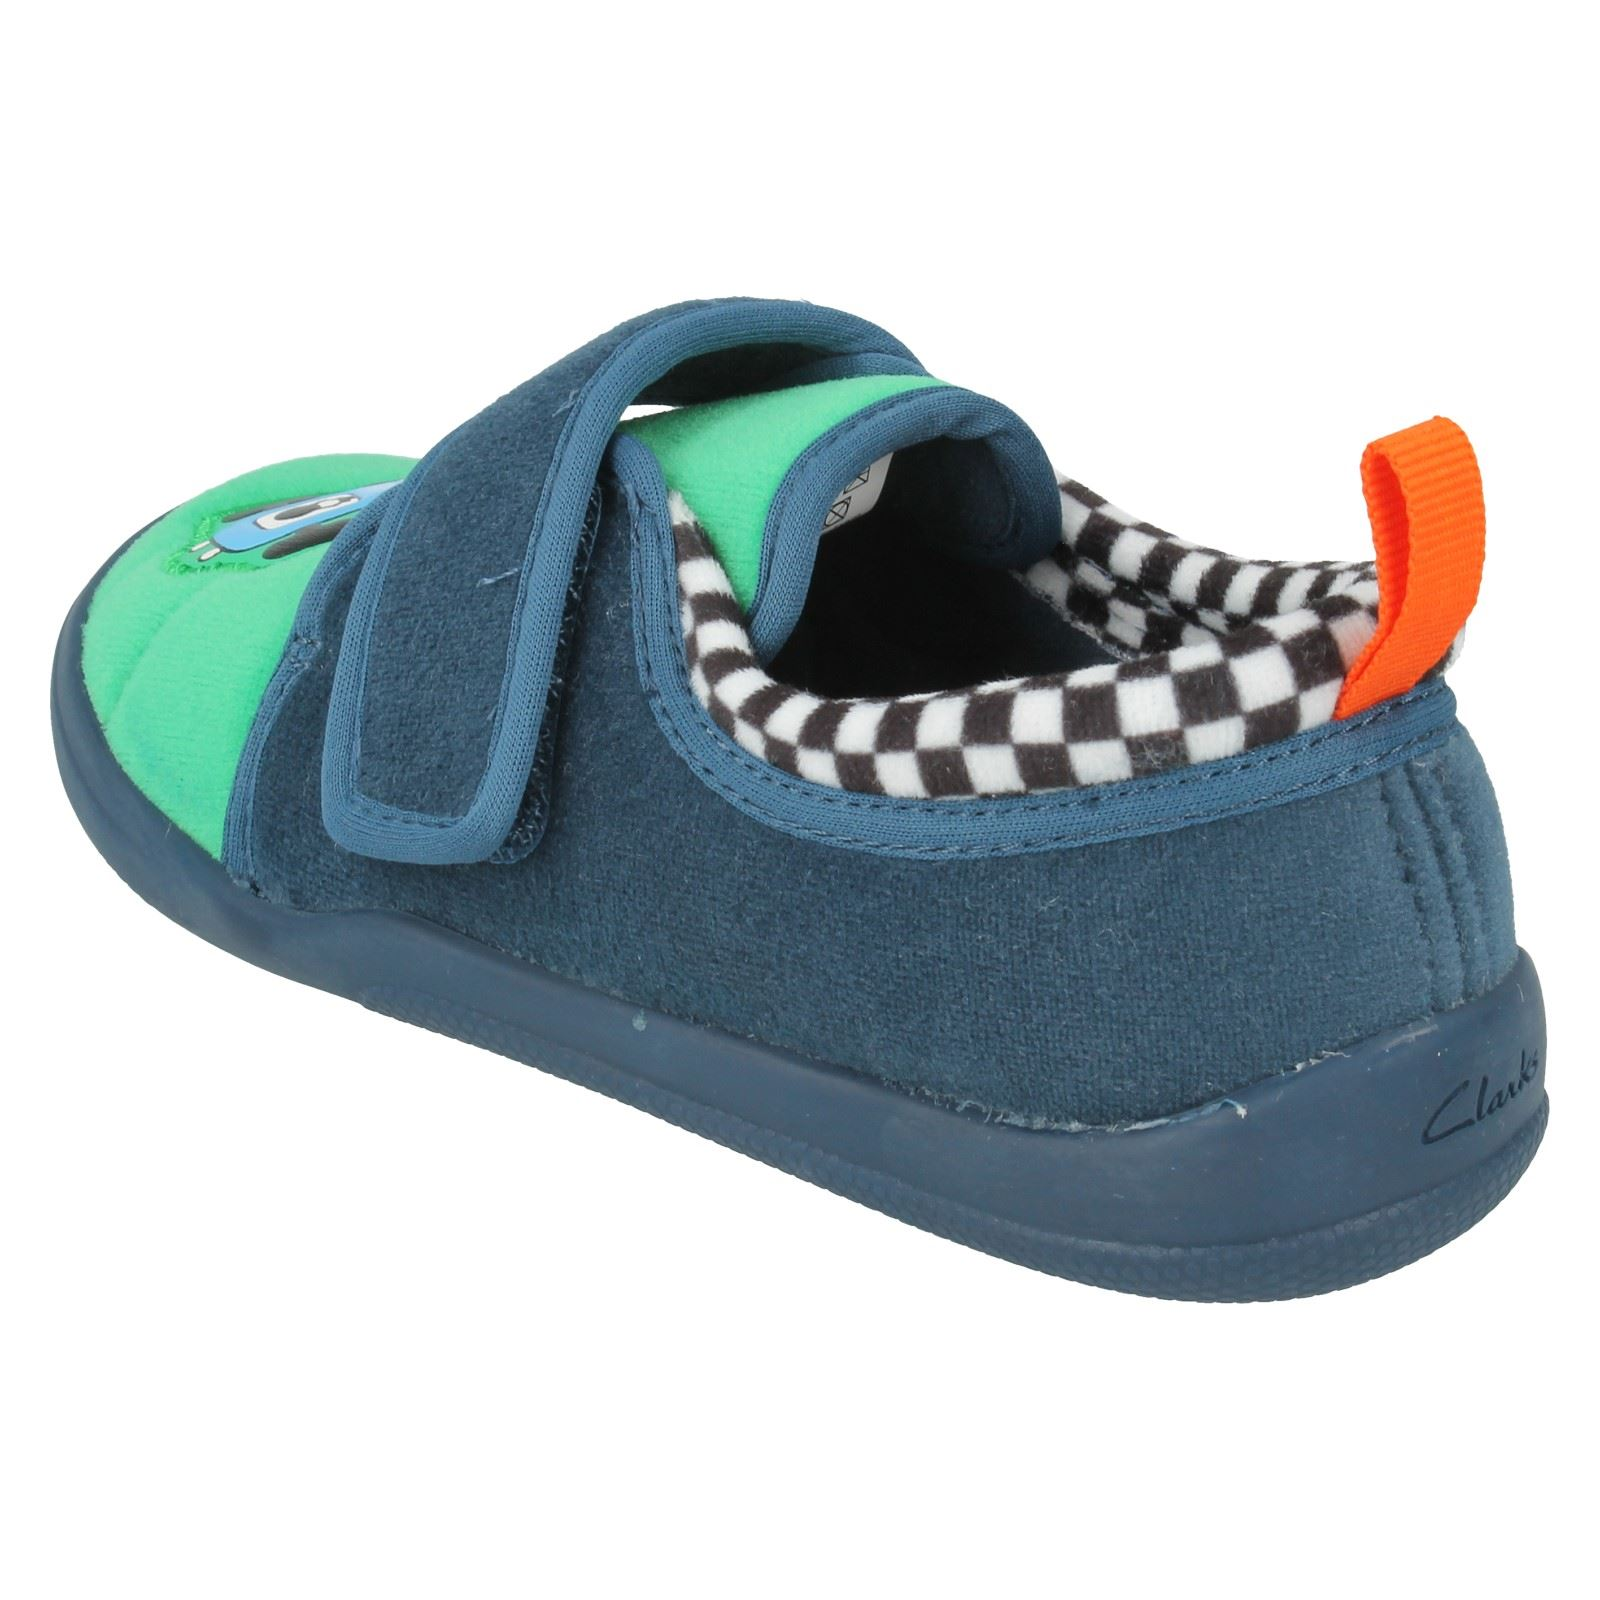 Boys Clarks Slippers Style - Cuba pace